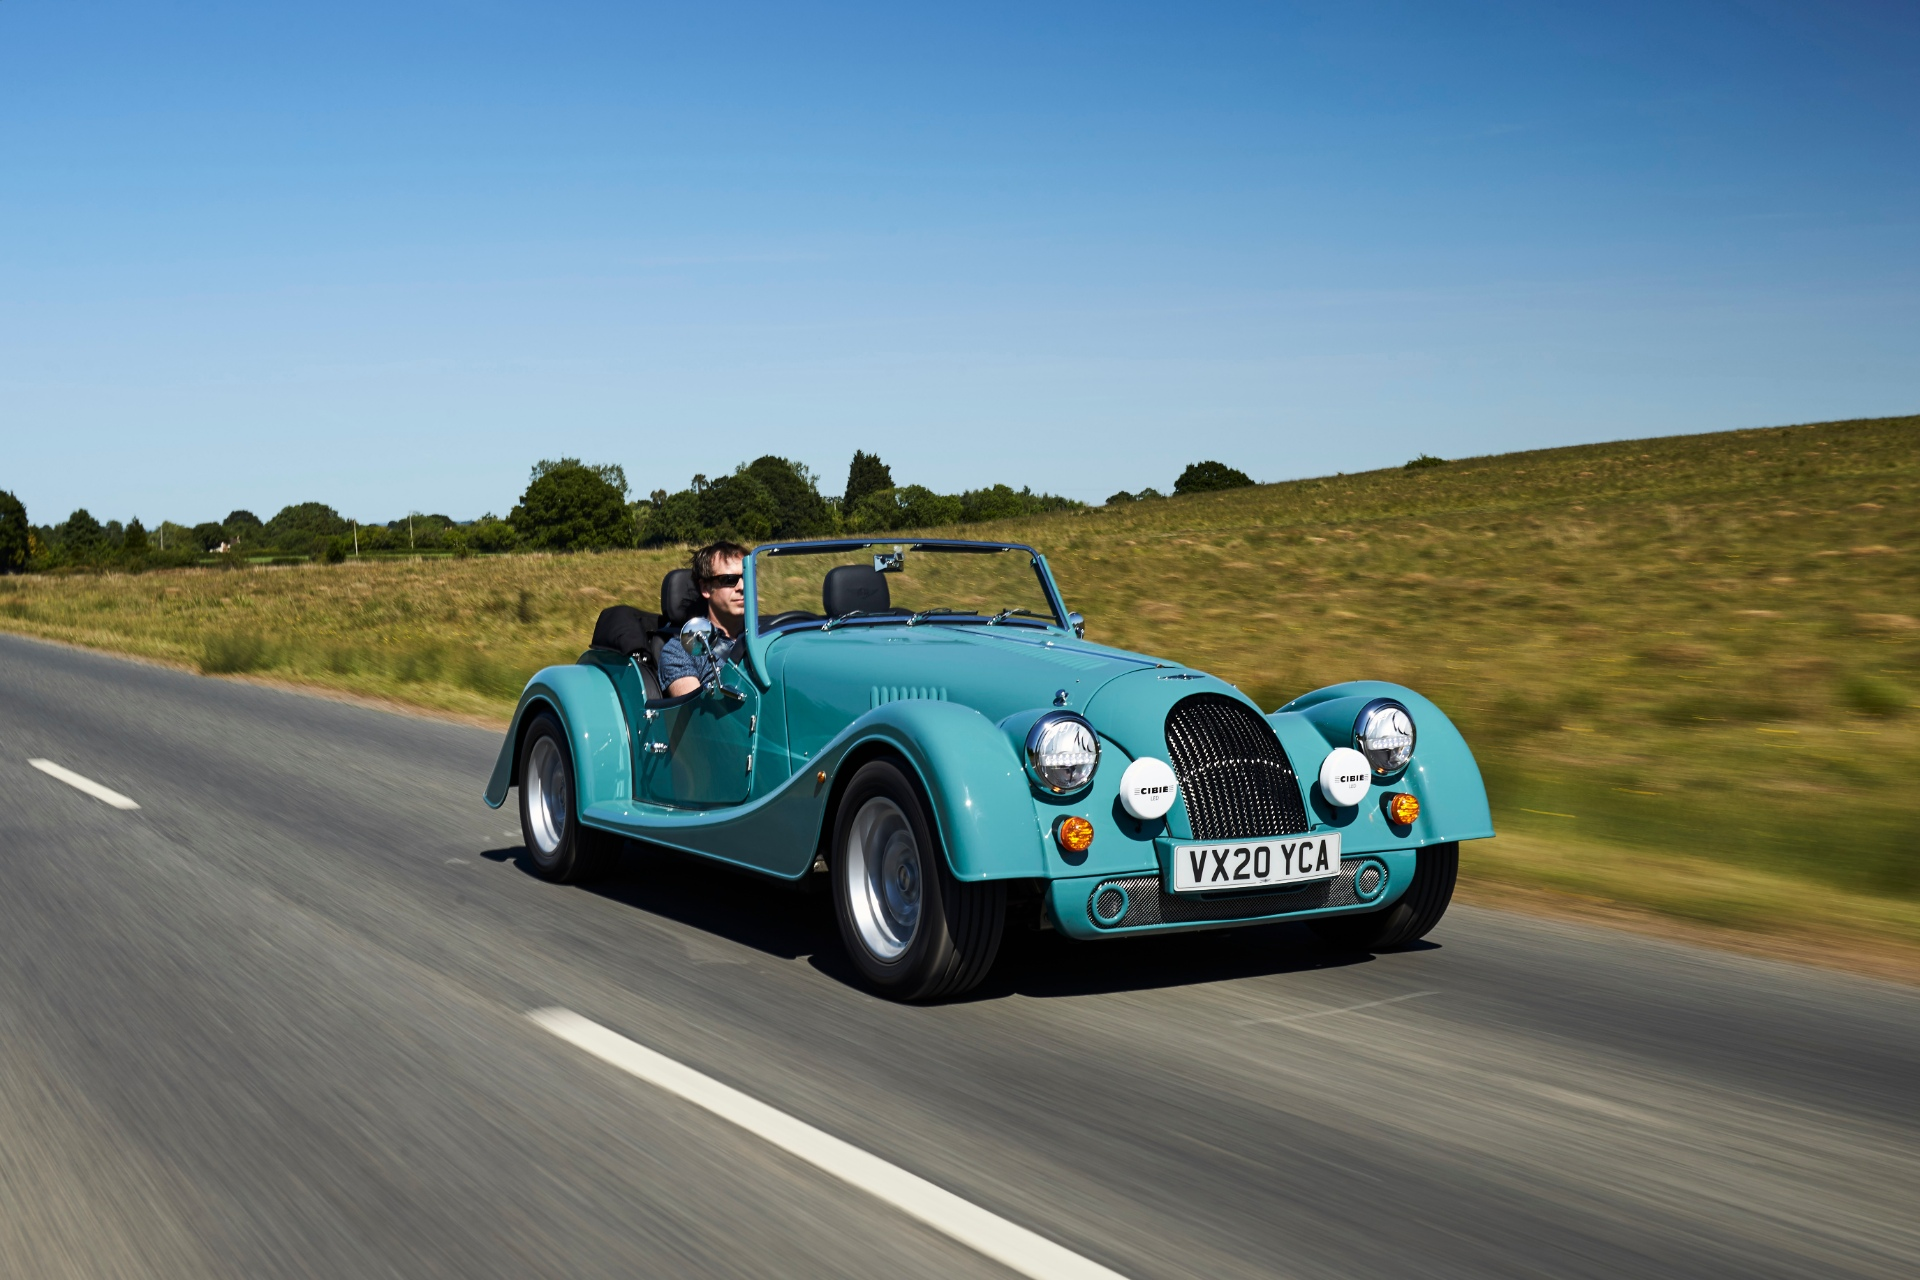 70 years in the making: Driving the new Morgan Plus Four